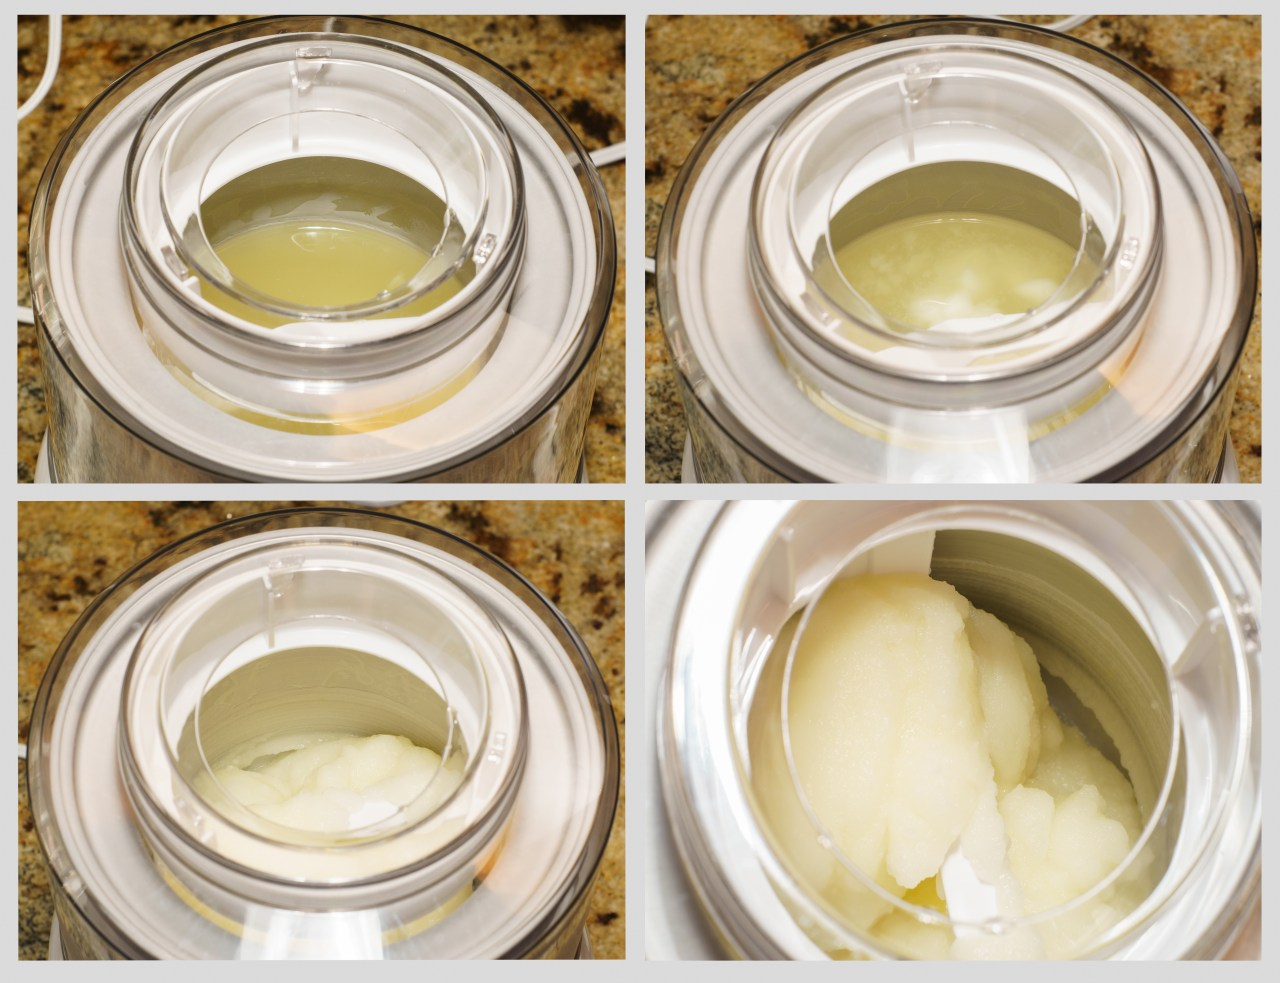 Four stages of the lemon sorbet.